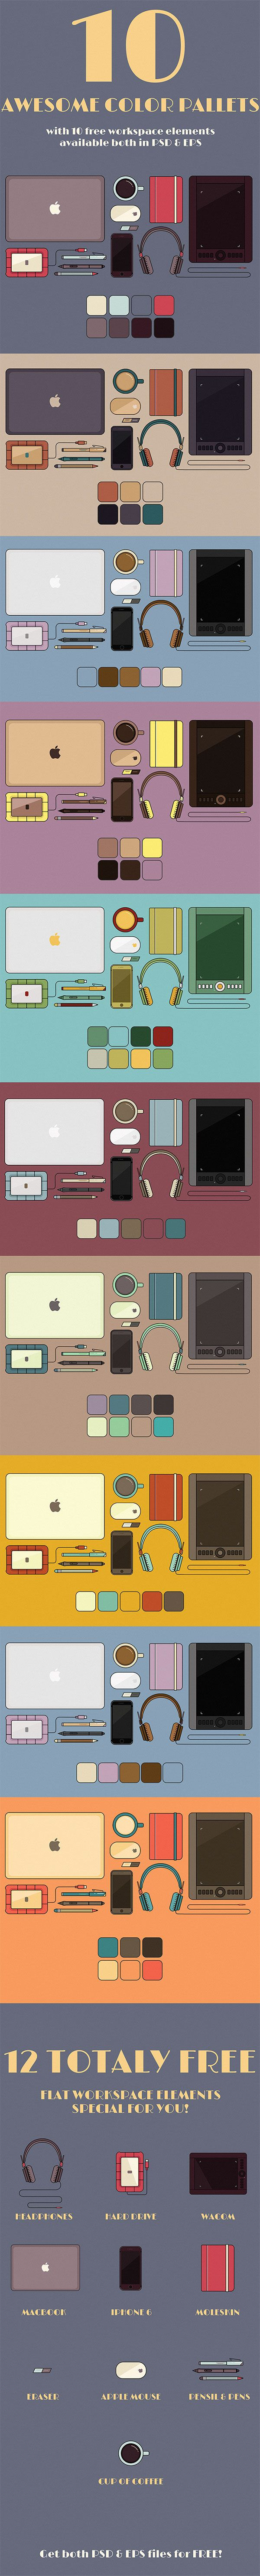 FREE 10 Flat Workspace Elements & Color Palettes on Behance